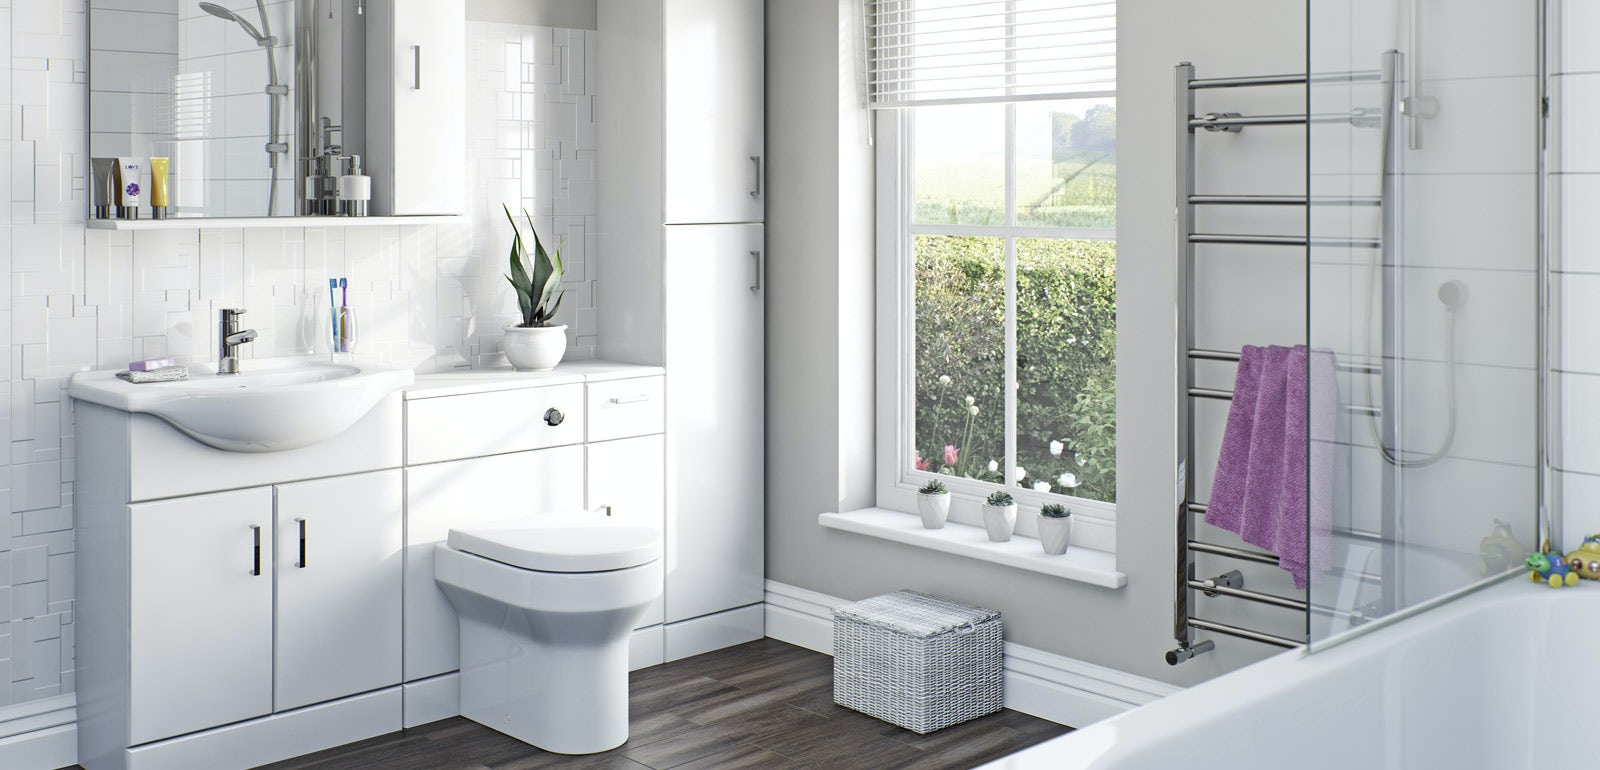 Tarragona White Floor Bathroom Cabinet : Sienna white gloss bathroom furniture victoriaplum